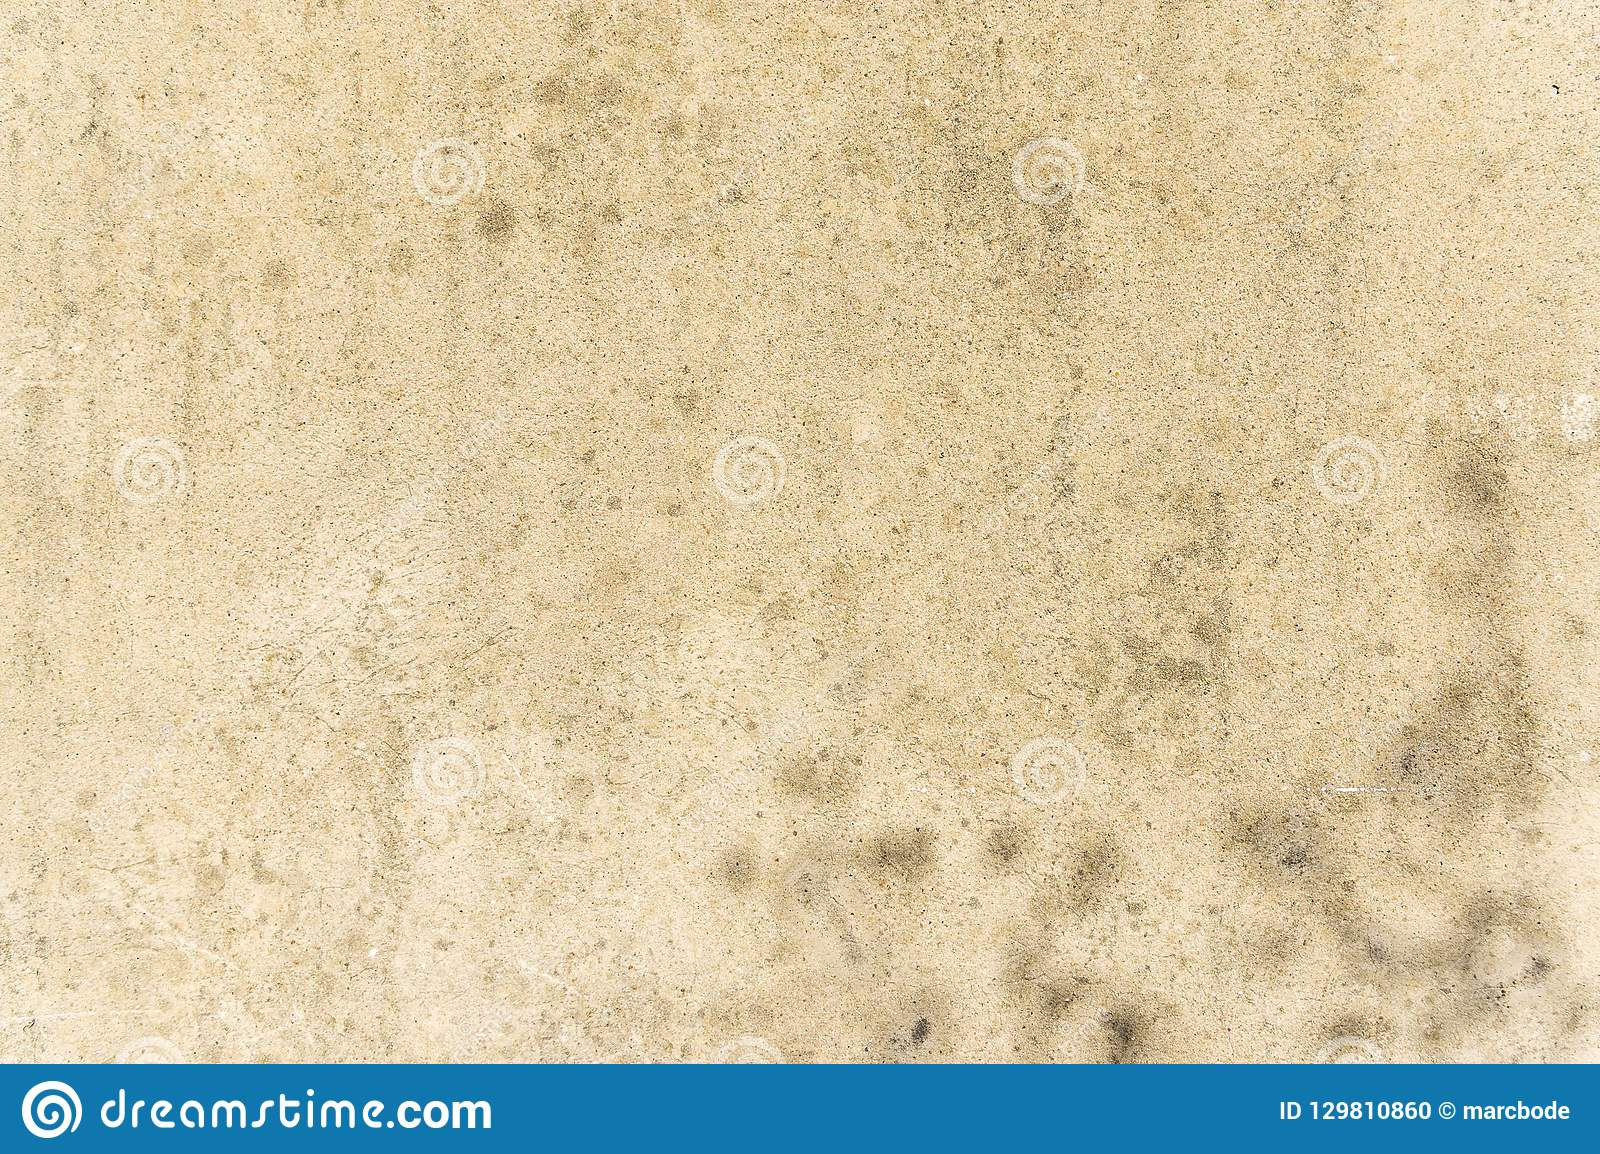 Weathered and dirty facade of concrete plaster as a background